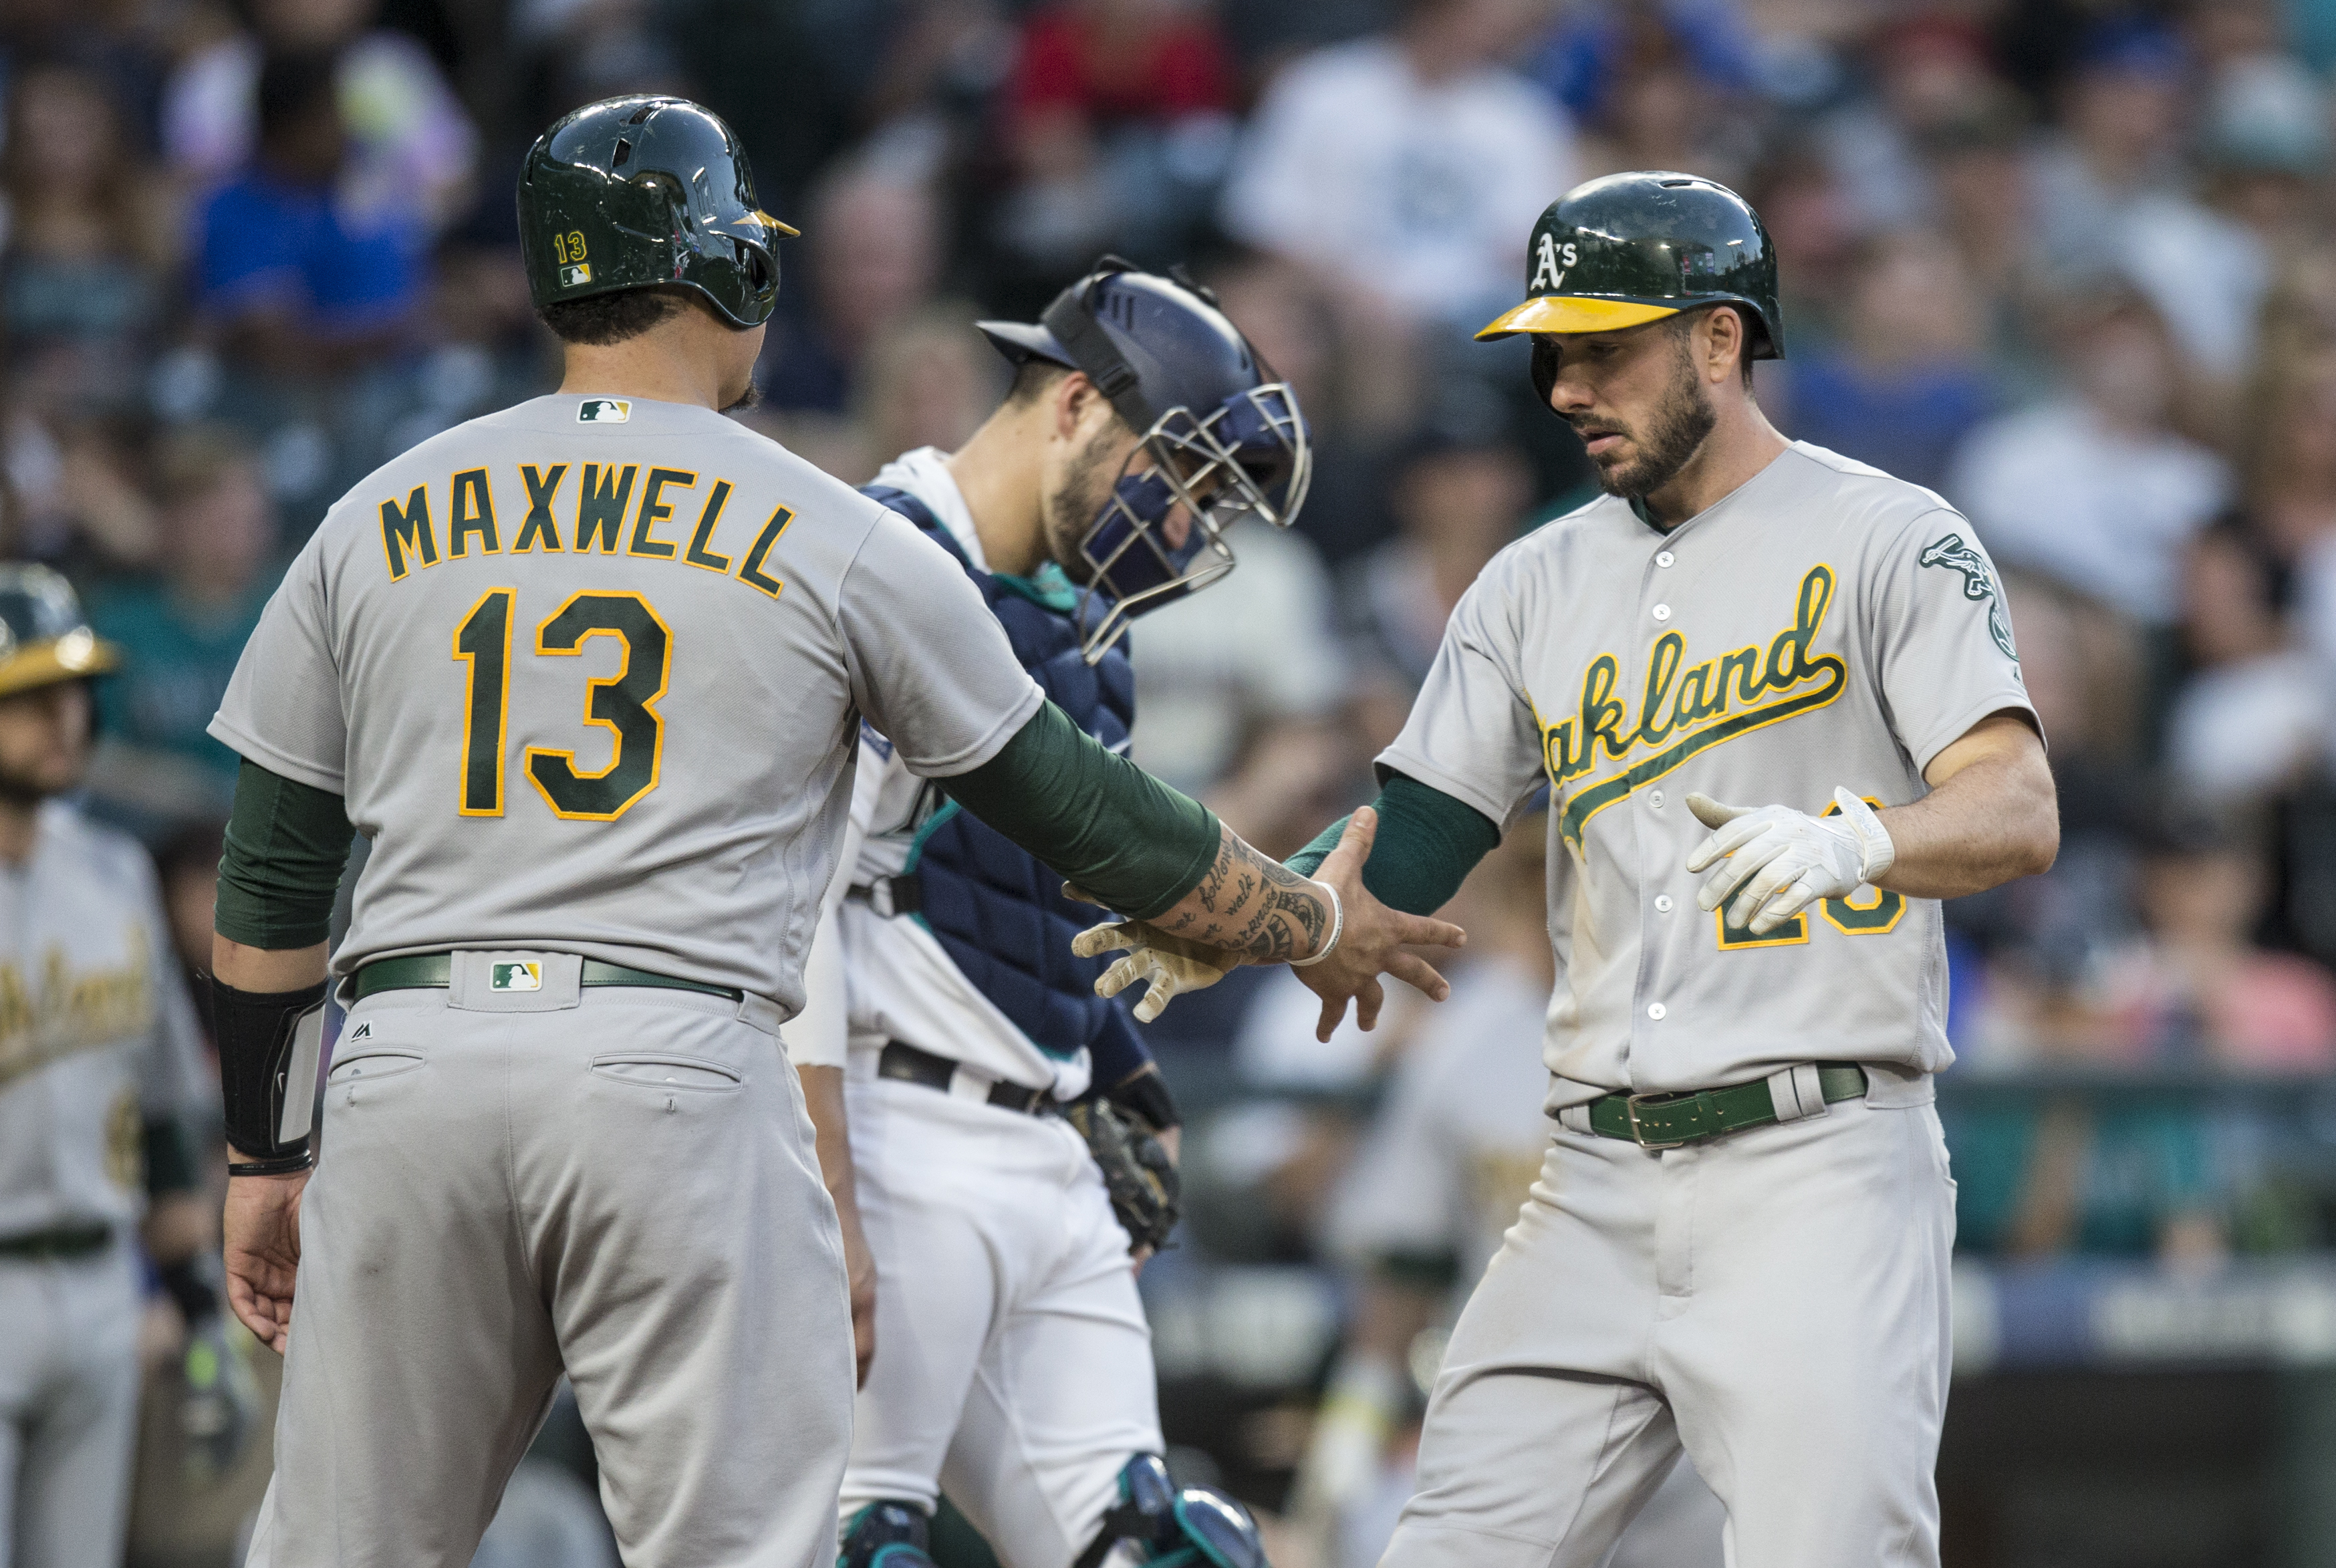 Oakland Athletics' Matt Joyce is congratulated by Bruce Maxwell after hitting a three-run home run off Seattle Mariners relief pitcher Casey Lawrence during the fourth inning of a baseball game on Saturday, Sept. 2, 2017, in Seattle. (AP Photo/Stephen Brashear)